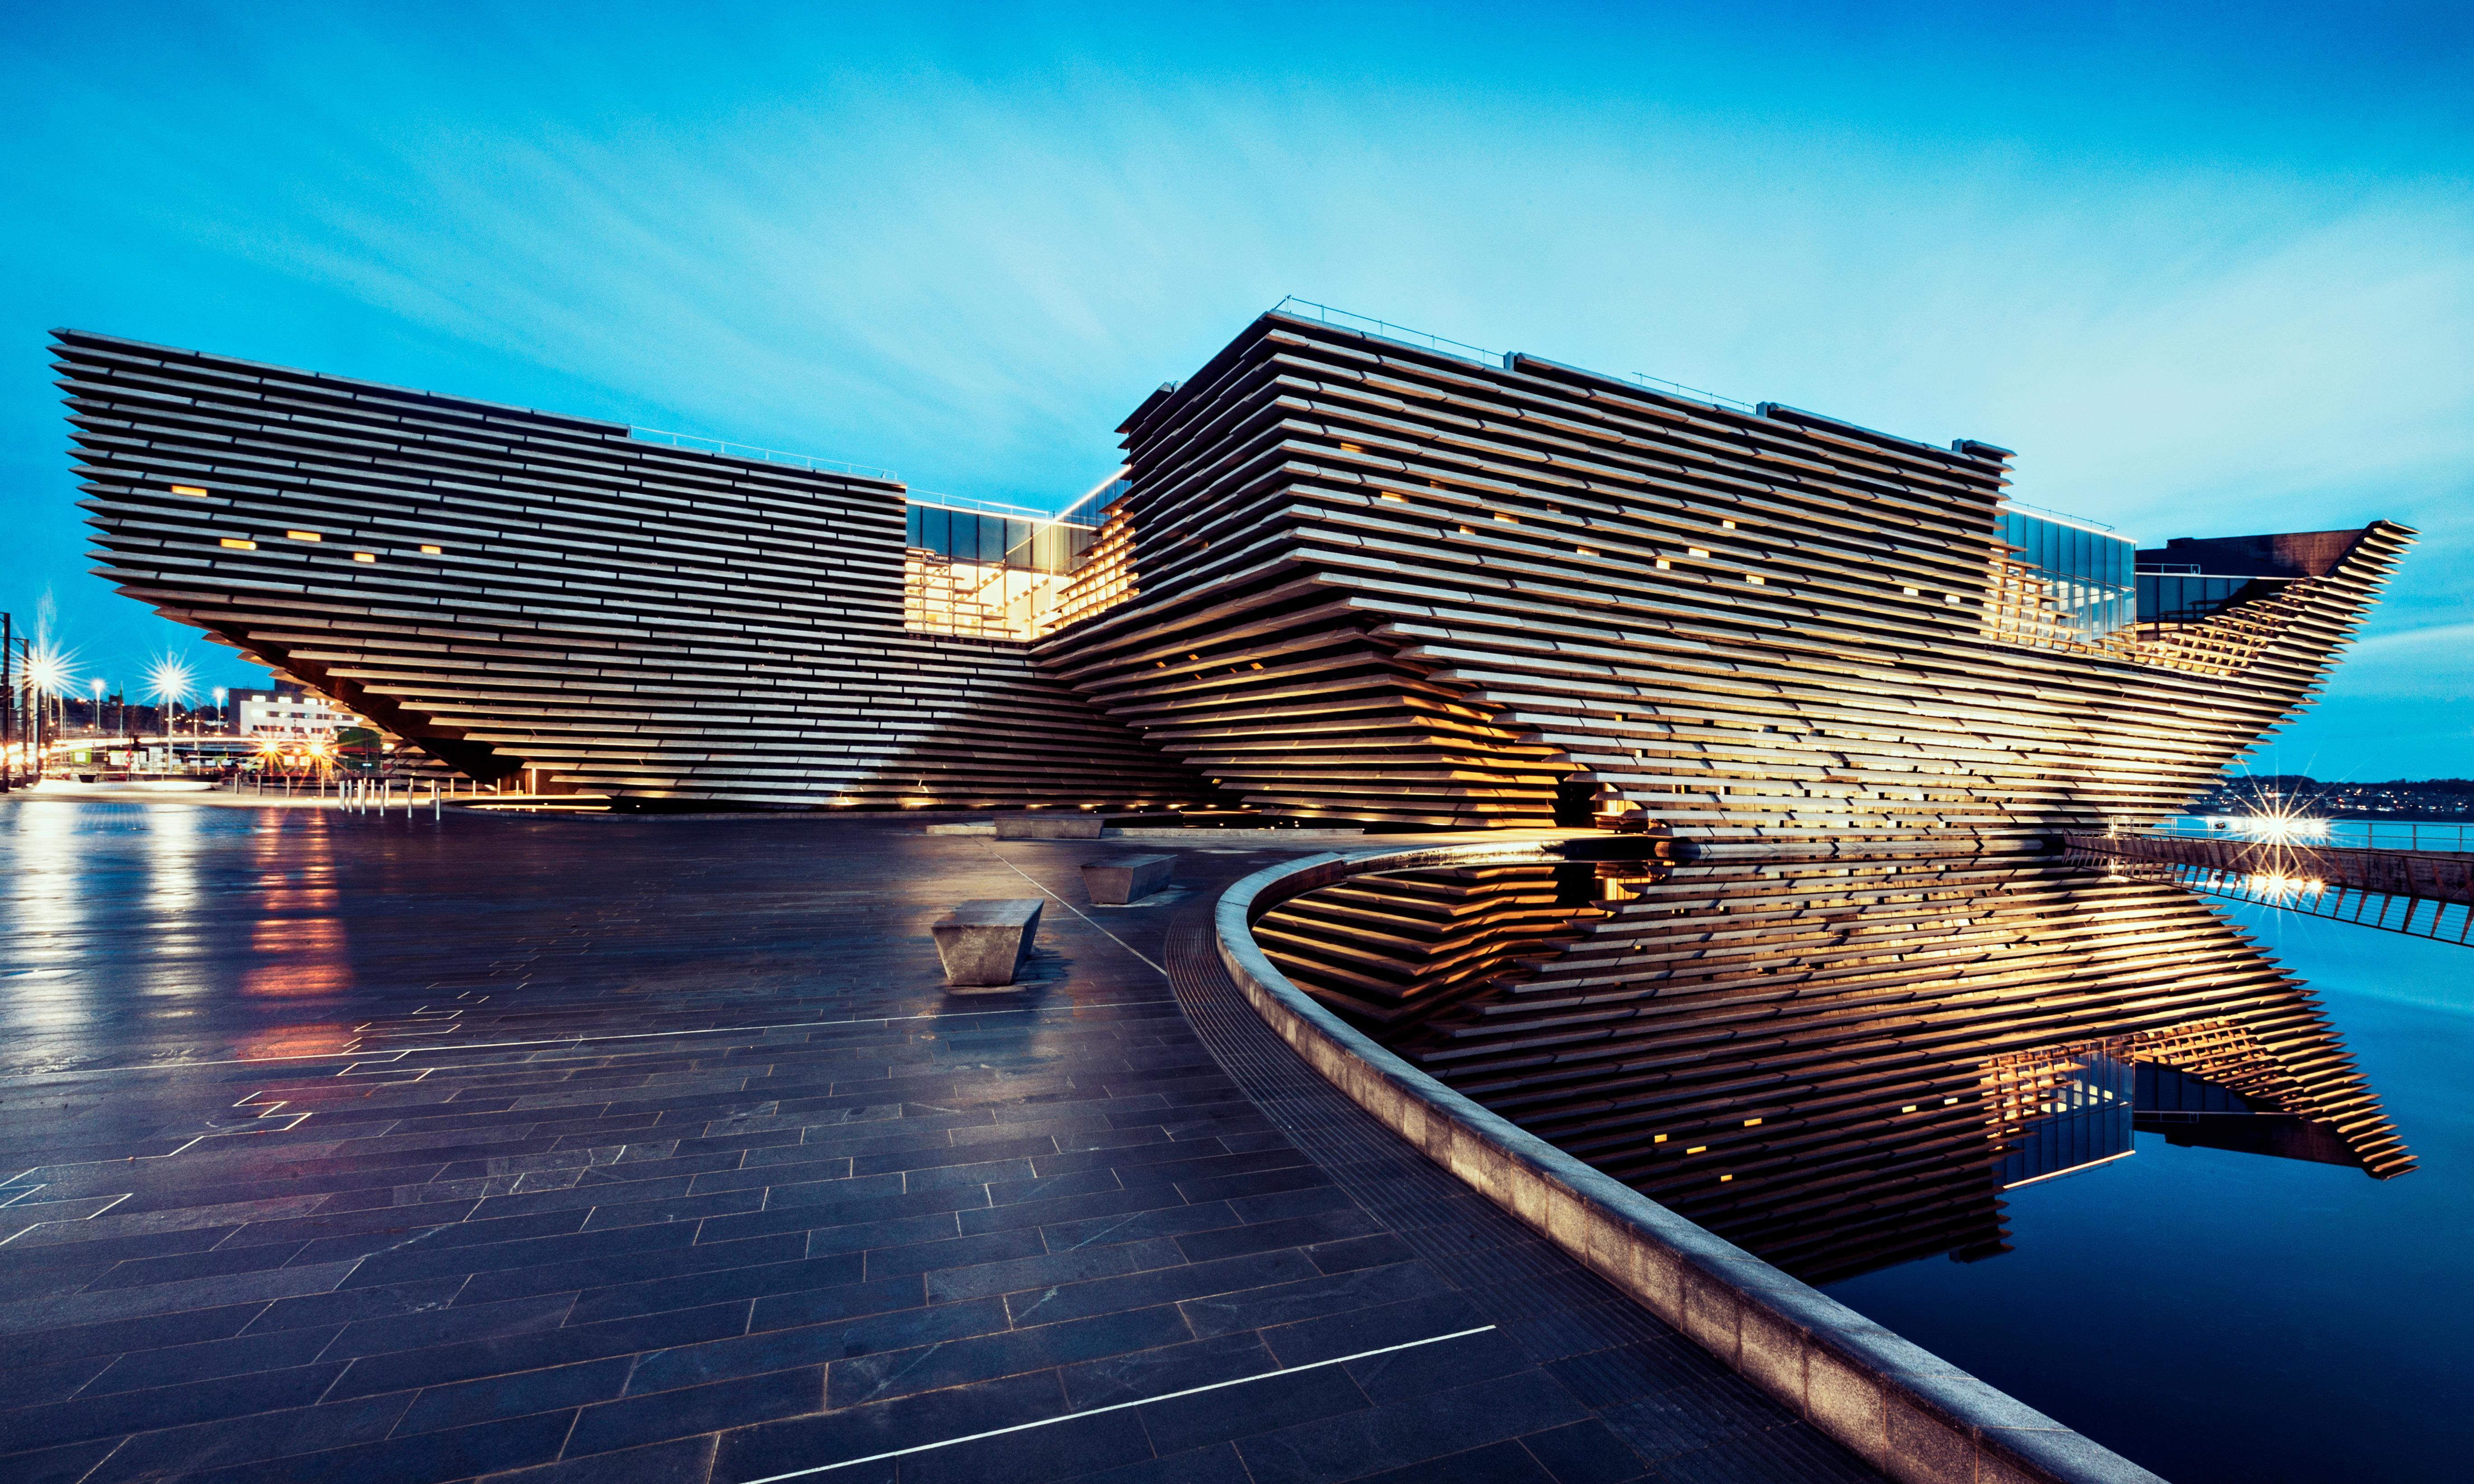 'Dynamic' Dundee earns place on Lonely Planet's Best in Europe 2018 hotlist